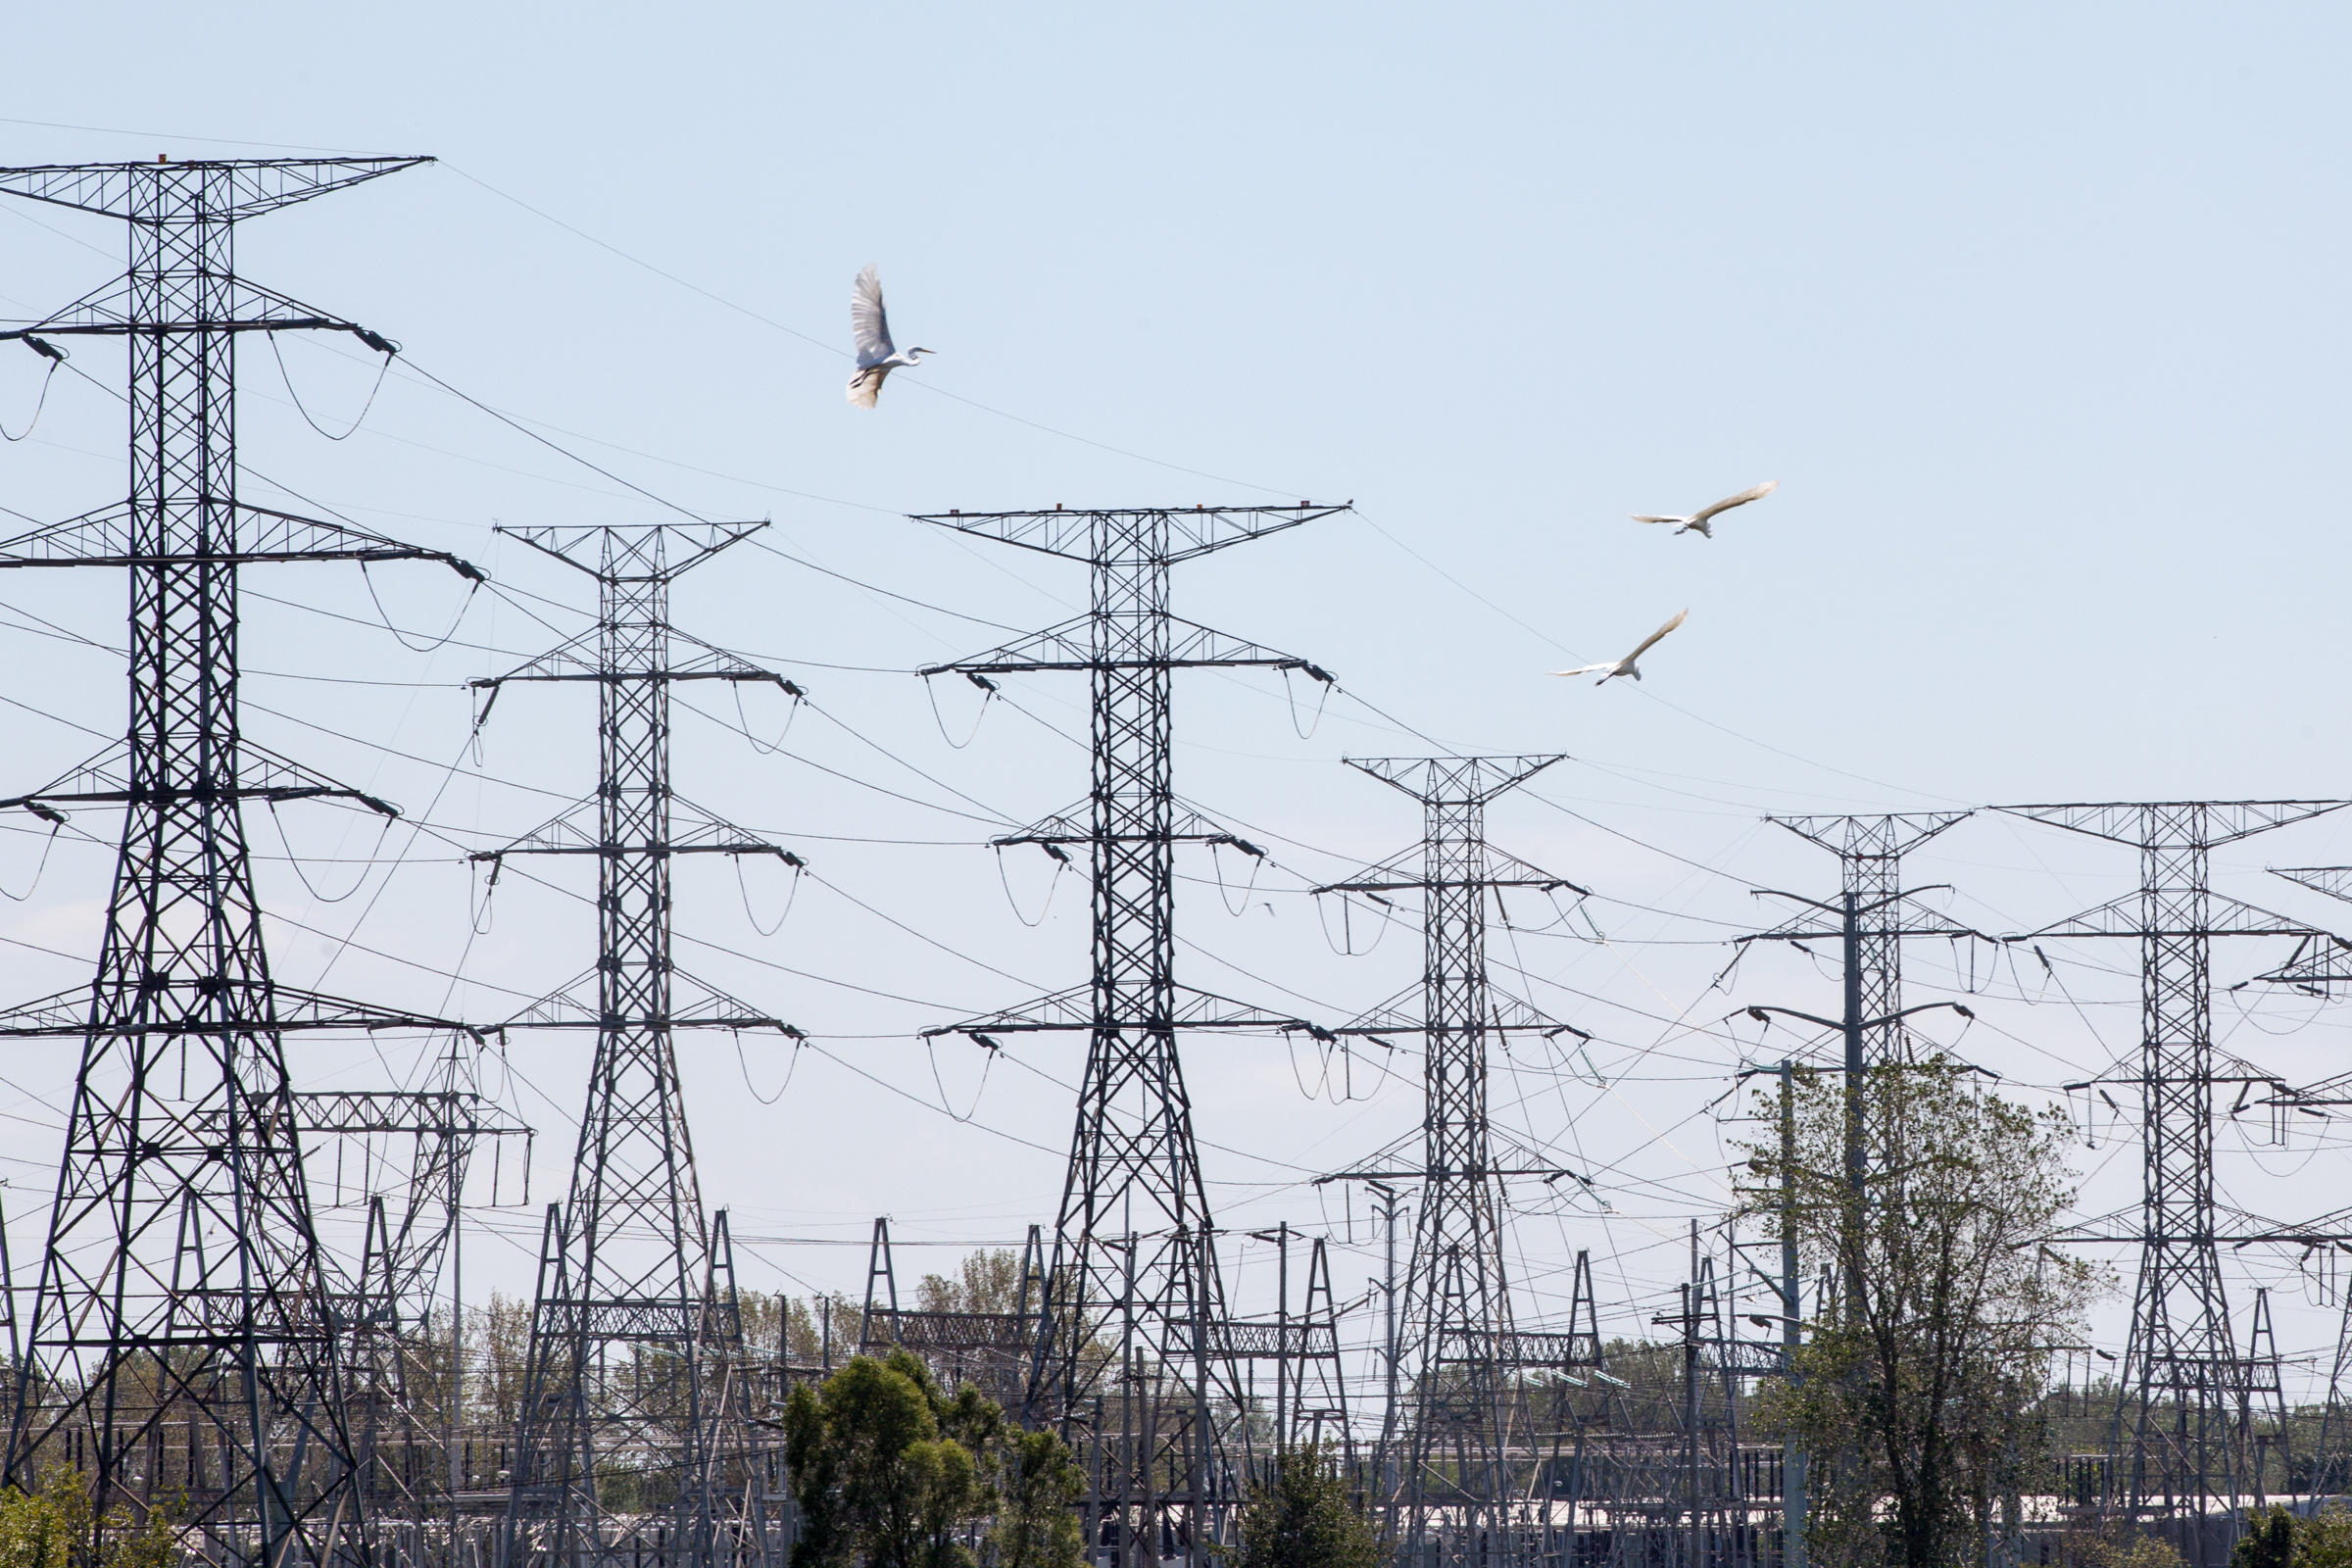 Great Egrets fly near transmission lines. Energy projects such as transmission lines and solar farms should be located in areas that will minimize harm to birds and other wildlife. Camilla Cerea/Audubon